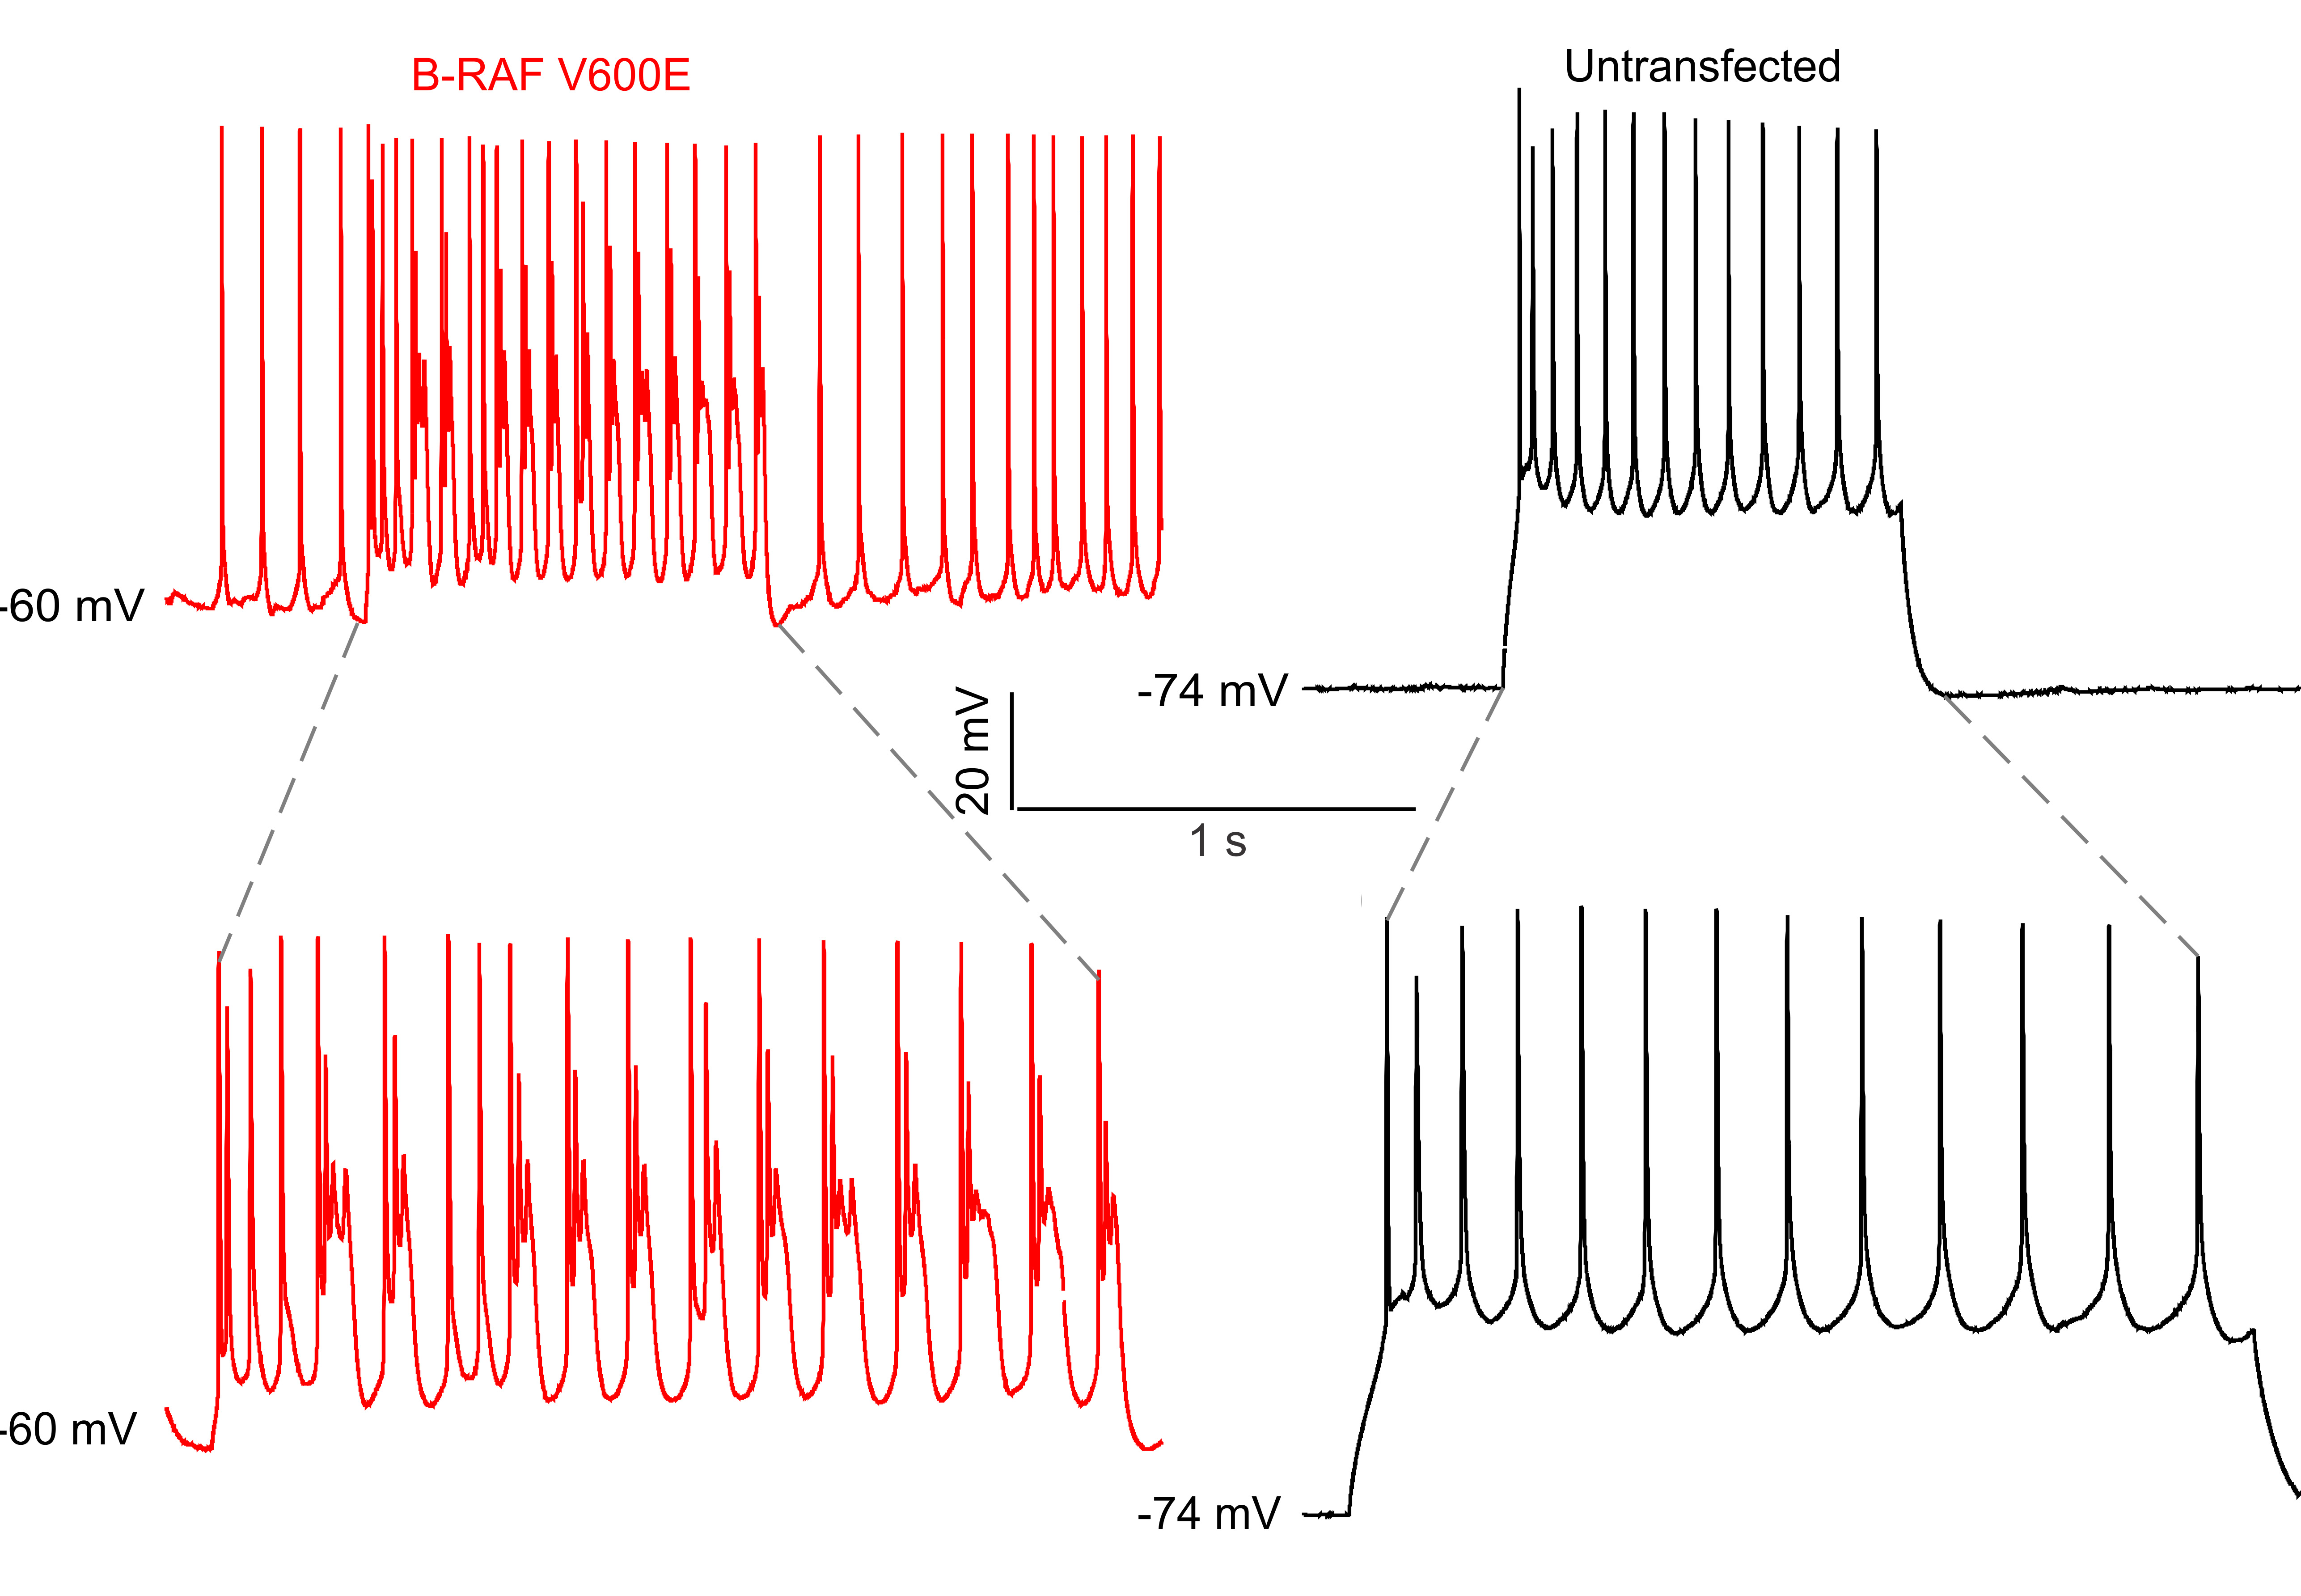 Image of Action Potentials in Control and BRAFV600E conditions.